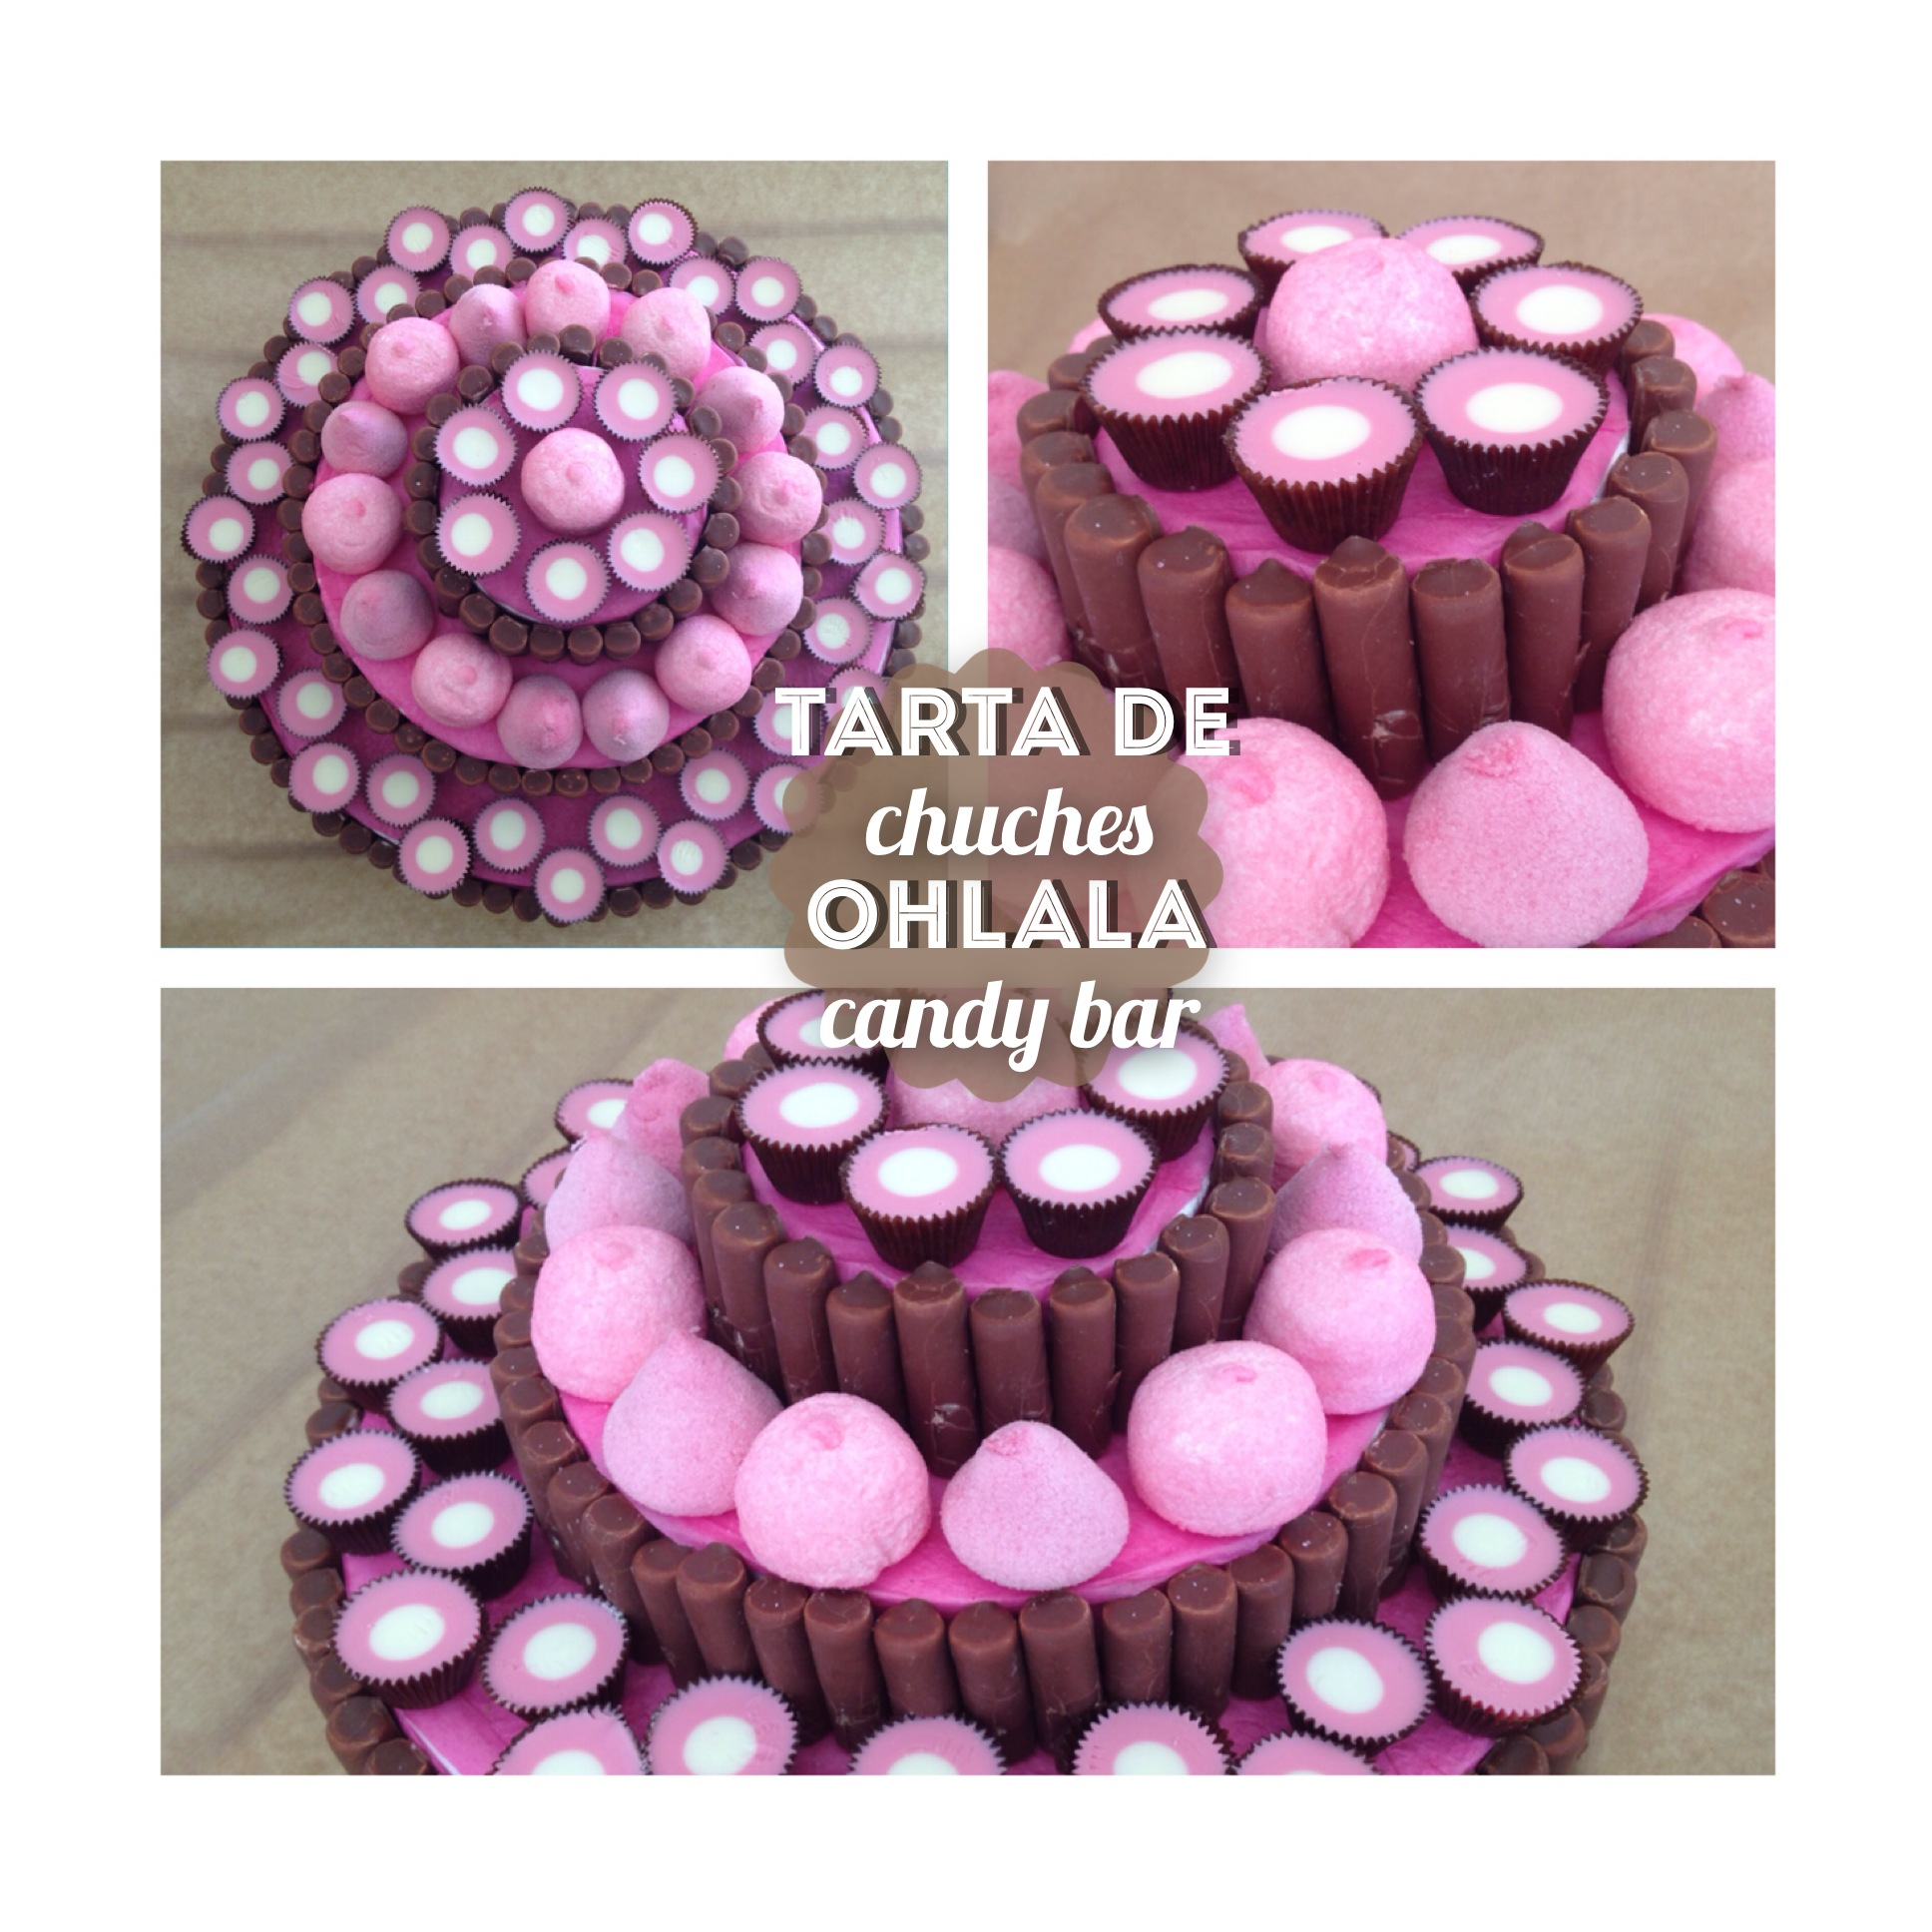 tarta-de-chuches-ohlala-candy-bar